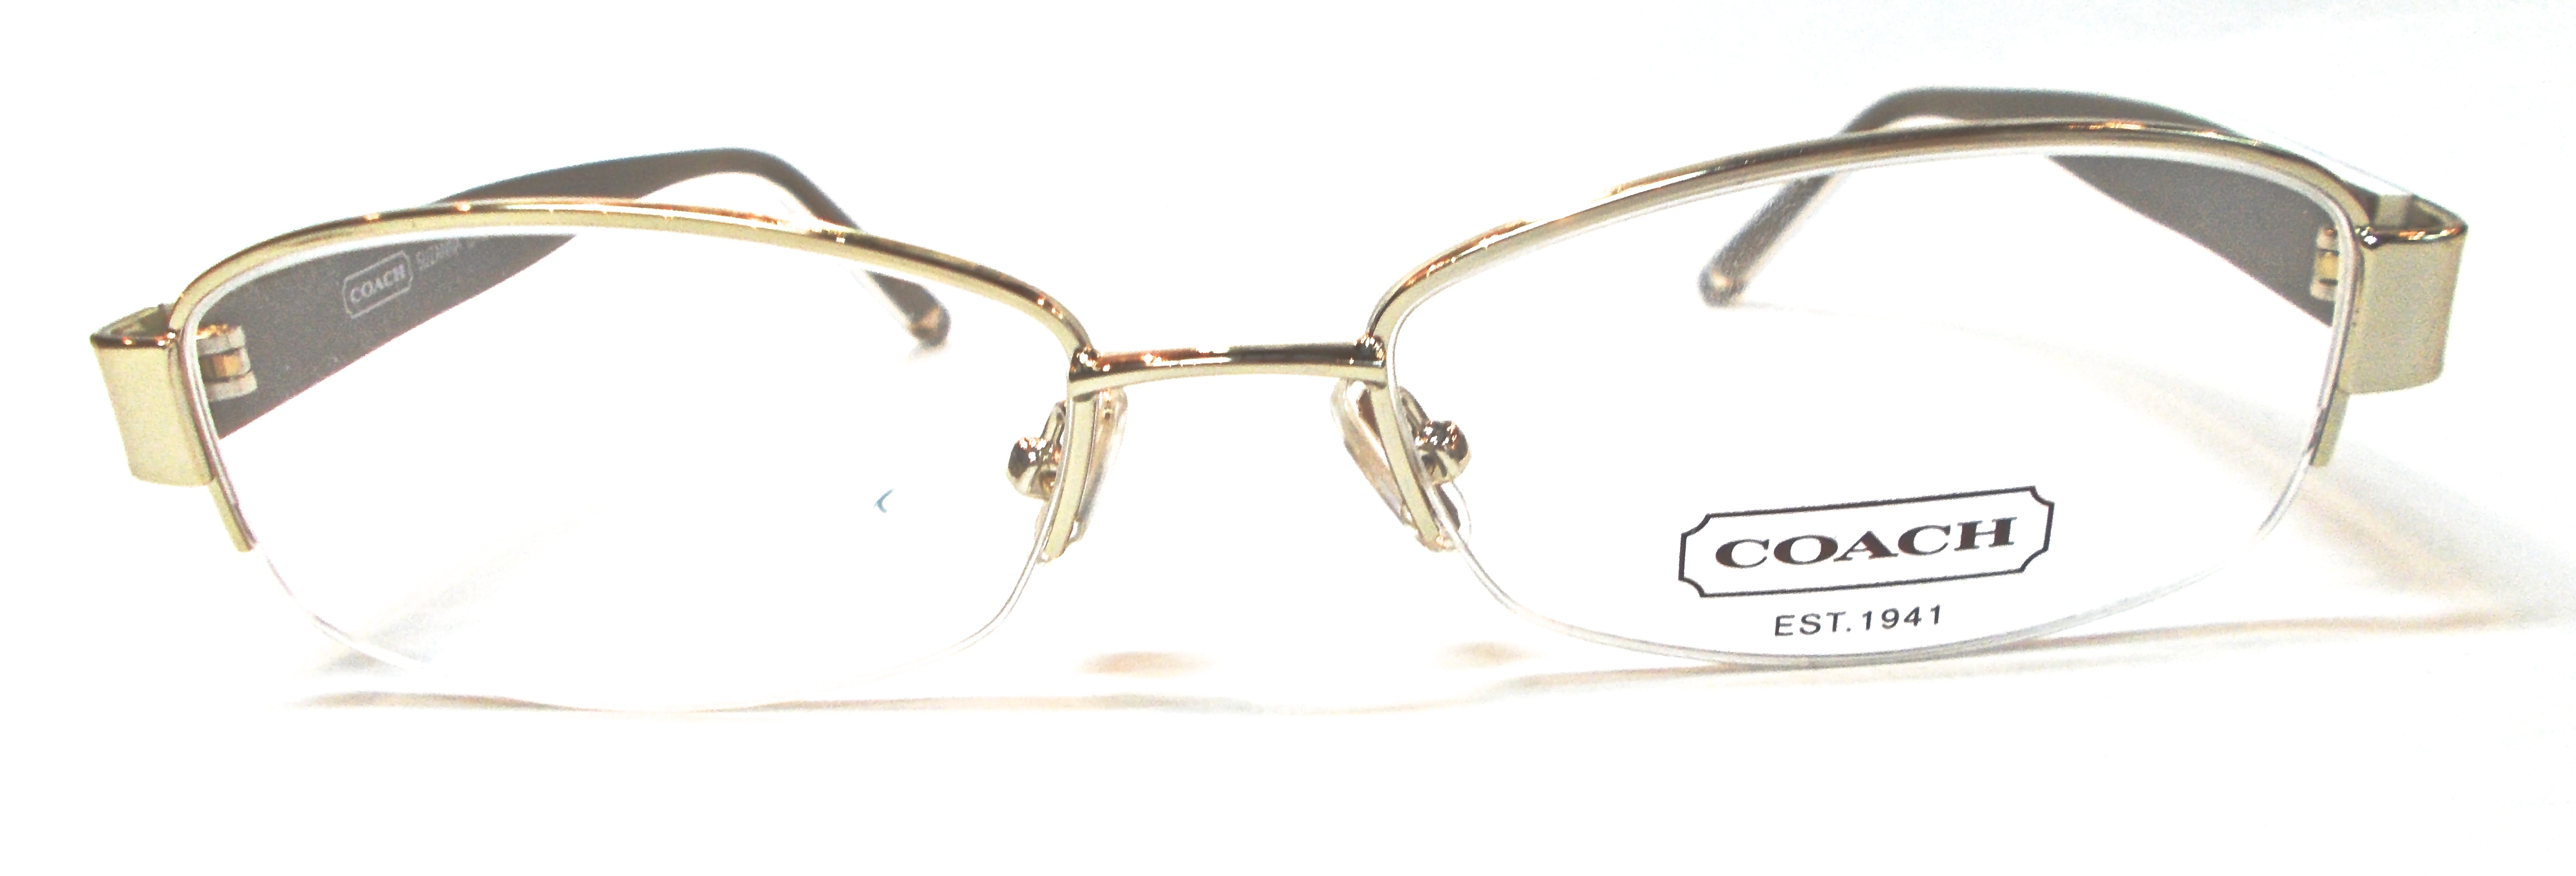 Coach Metal Eyeglass Frames : H&S Optical Coach Eyewear Suzanna (246) Golden Metal ...